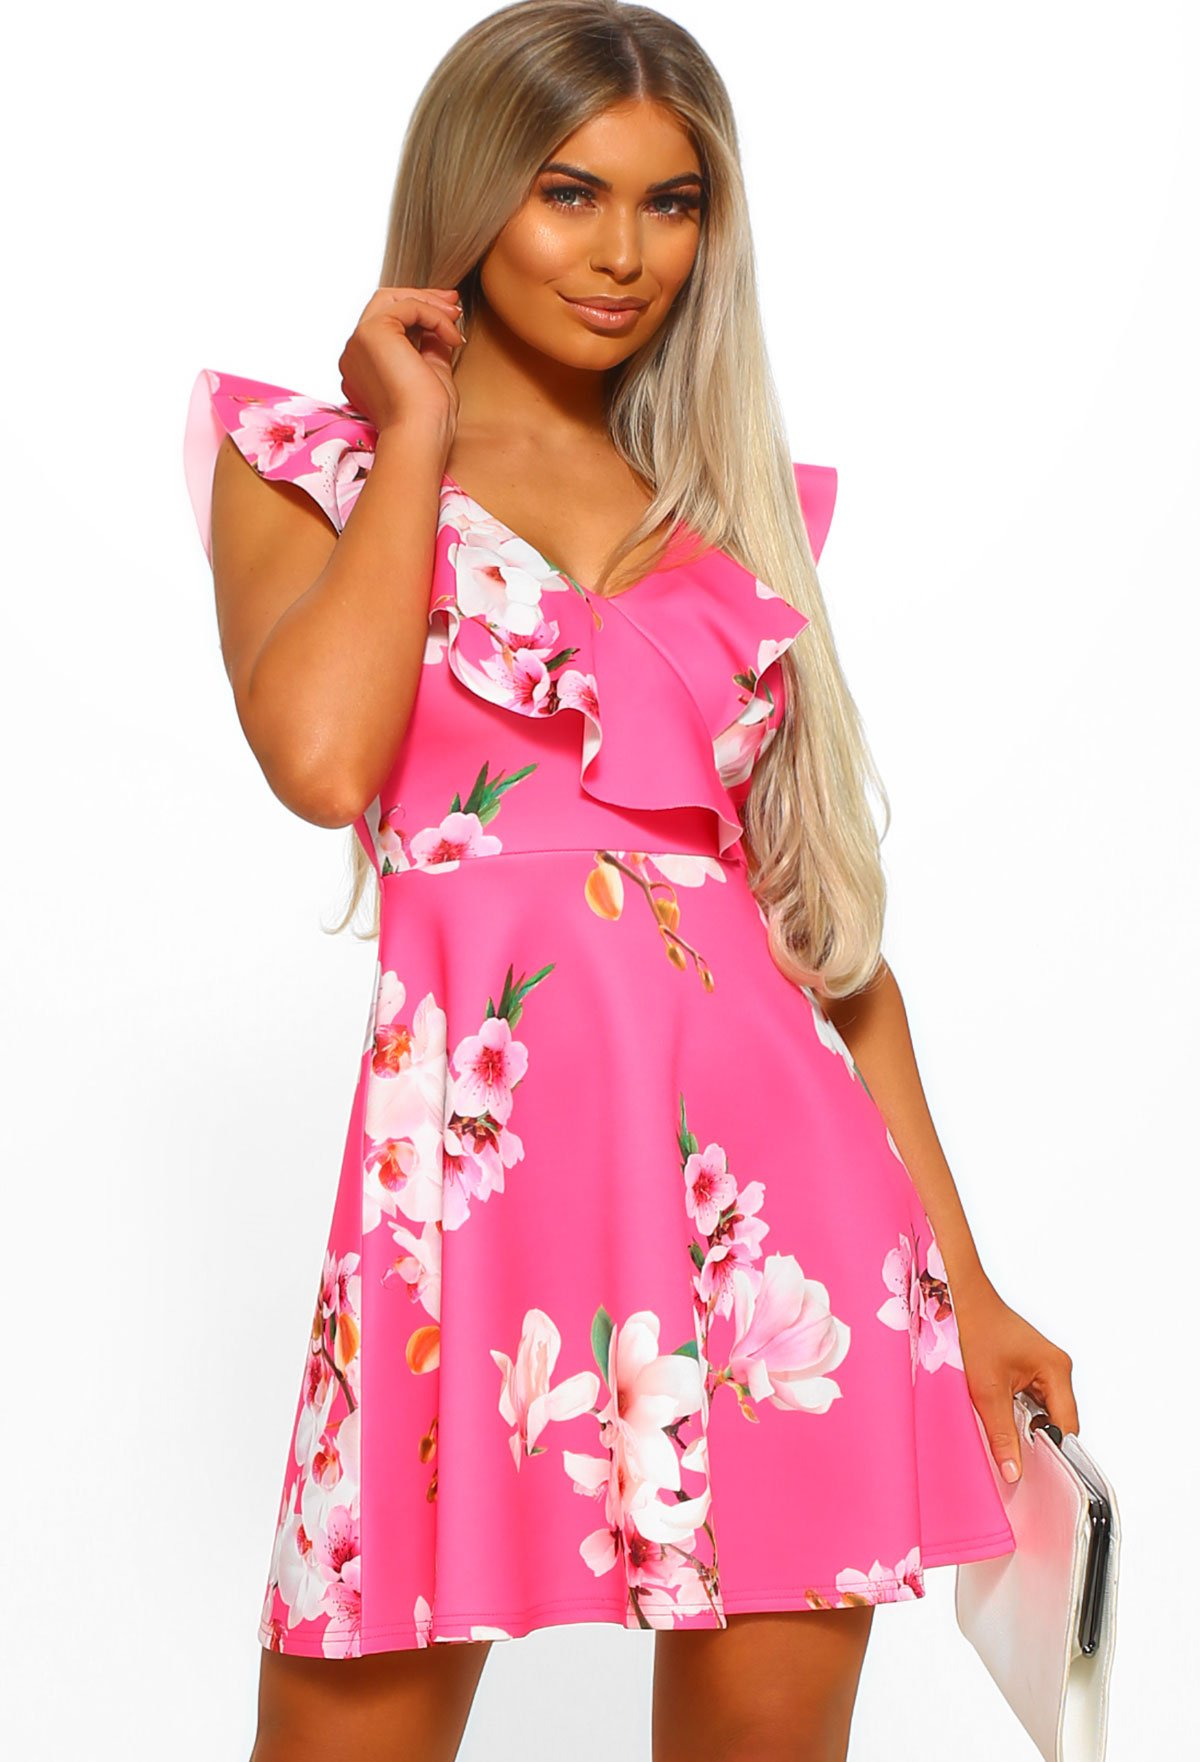 6f80fc93 Hampton's Party Pink Floral Frill Skater Dress - 8 in 2019 | NEW IN ...